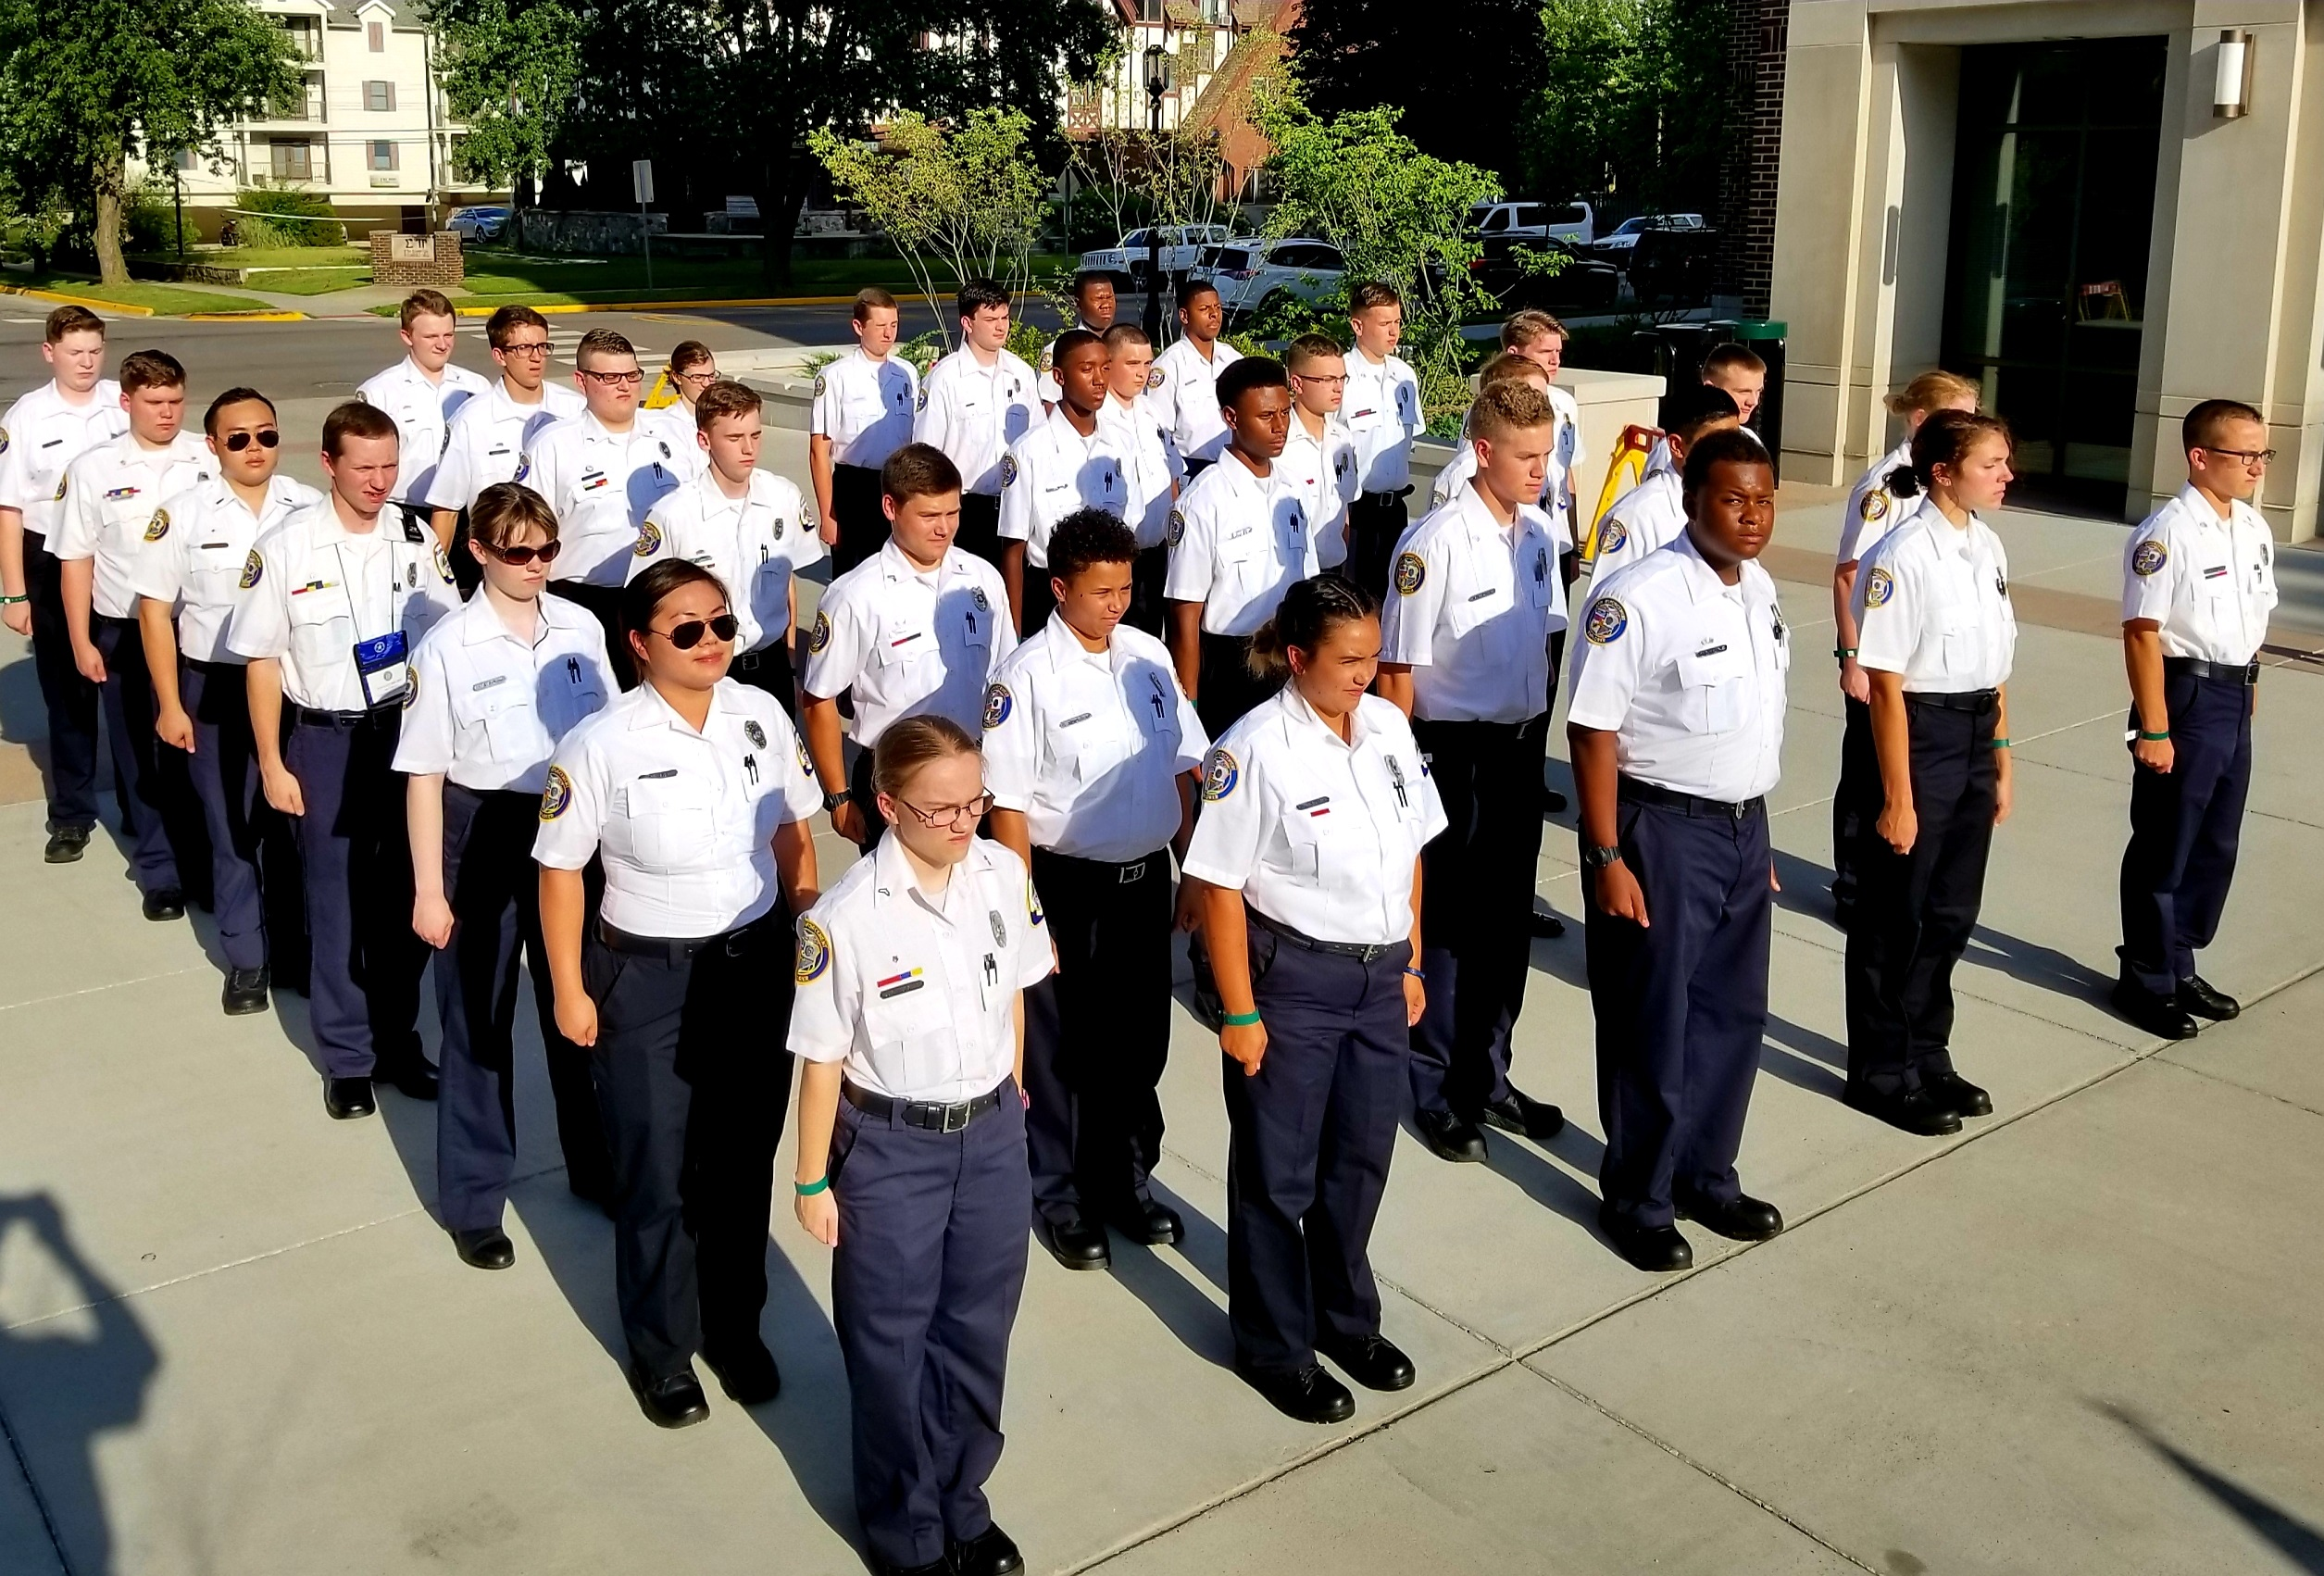 Photo of Baltimore County Police Explorers standing at attention.